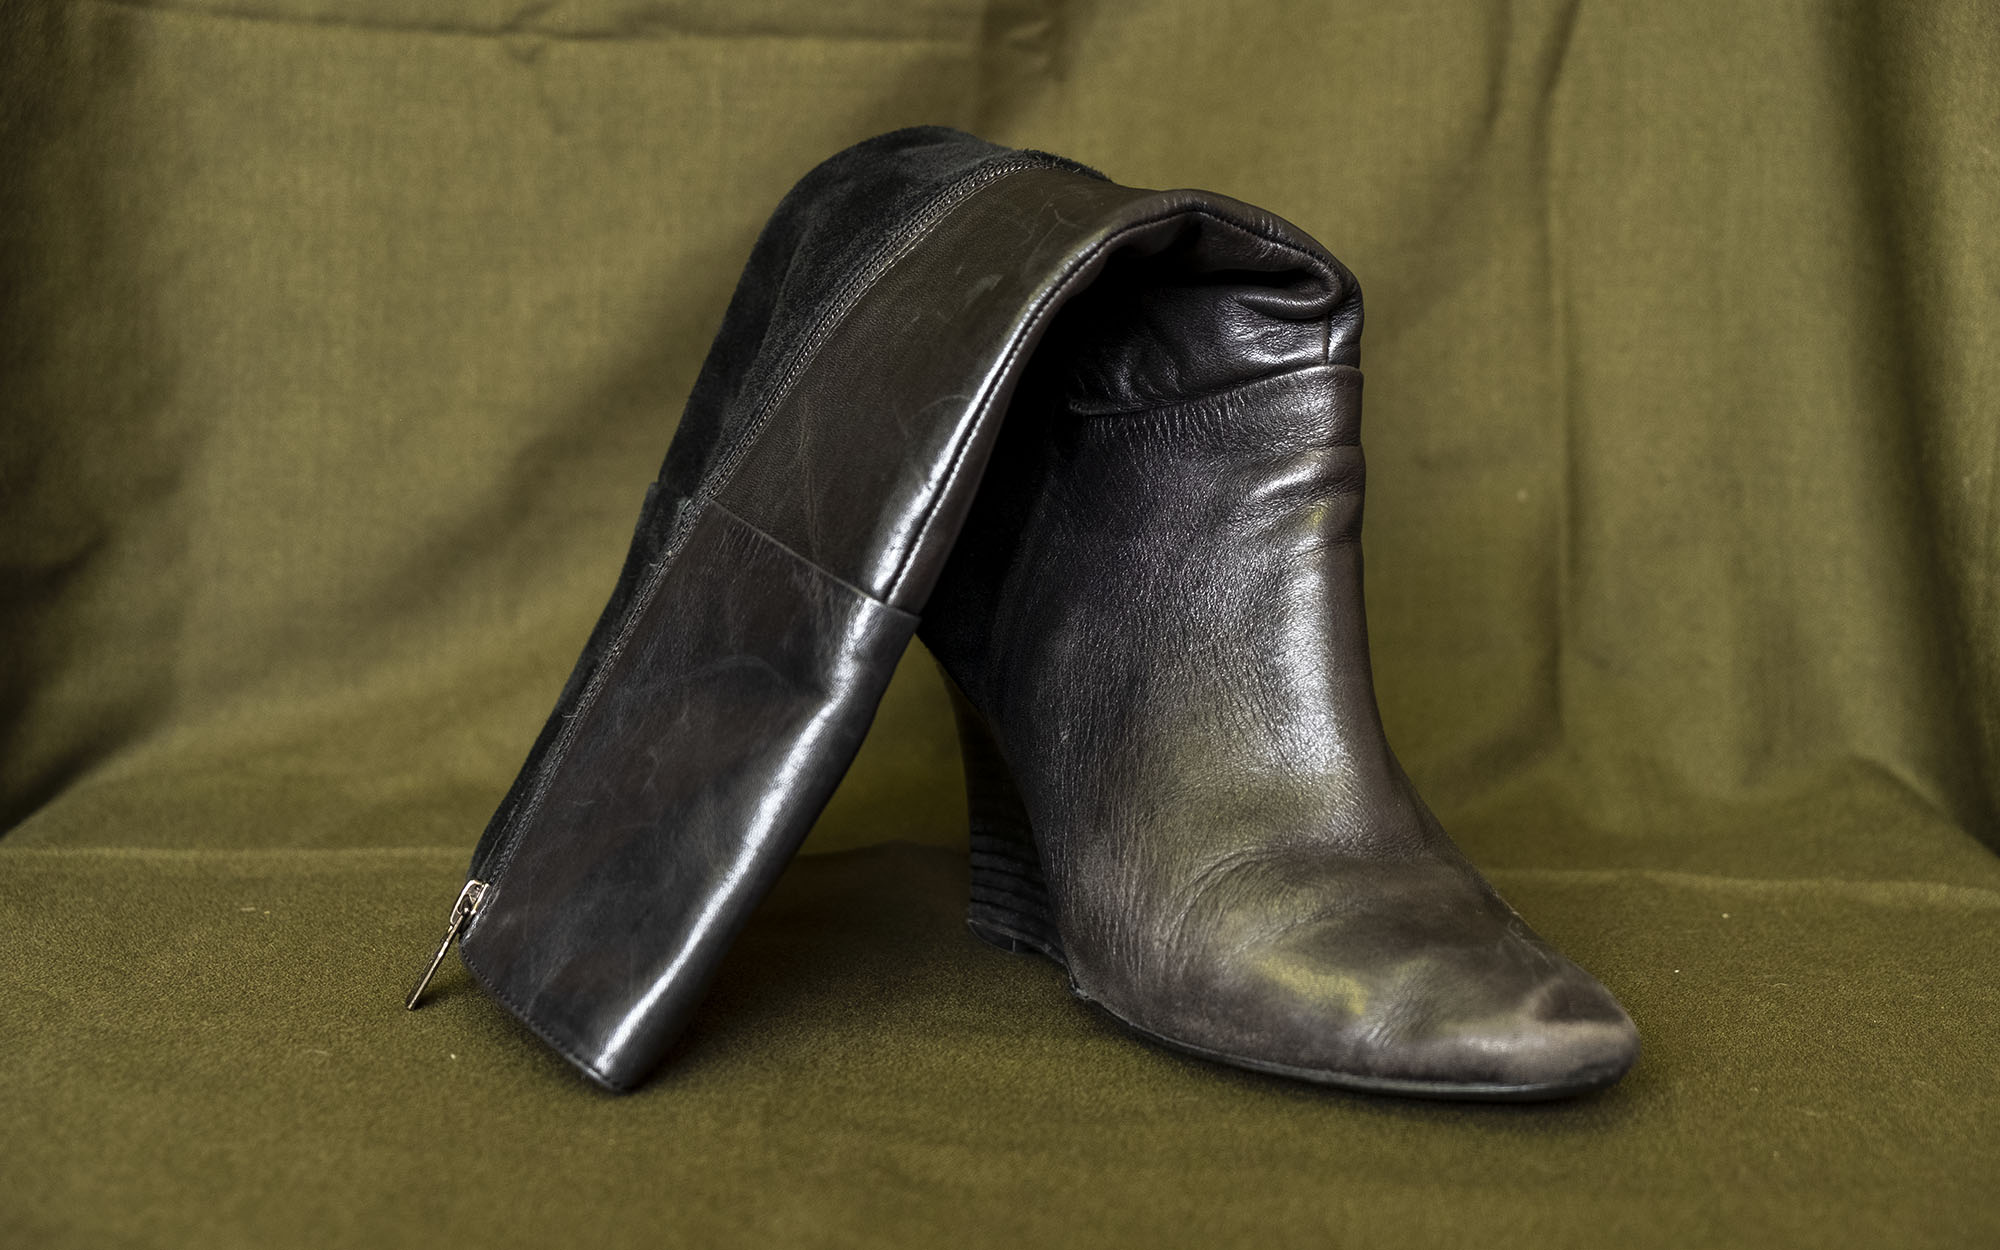 A high-leg leather boot